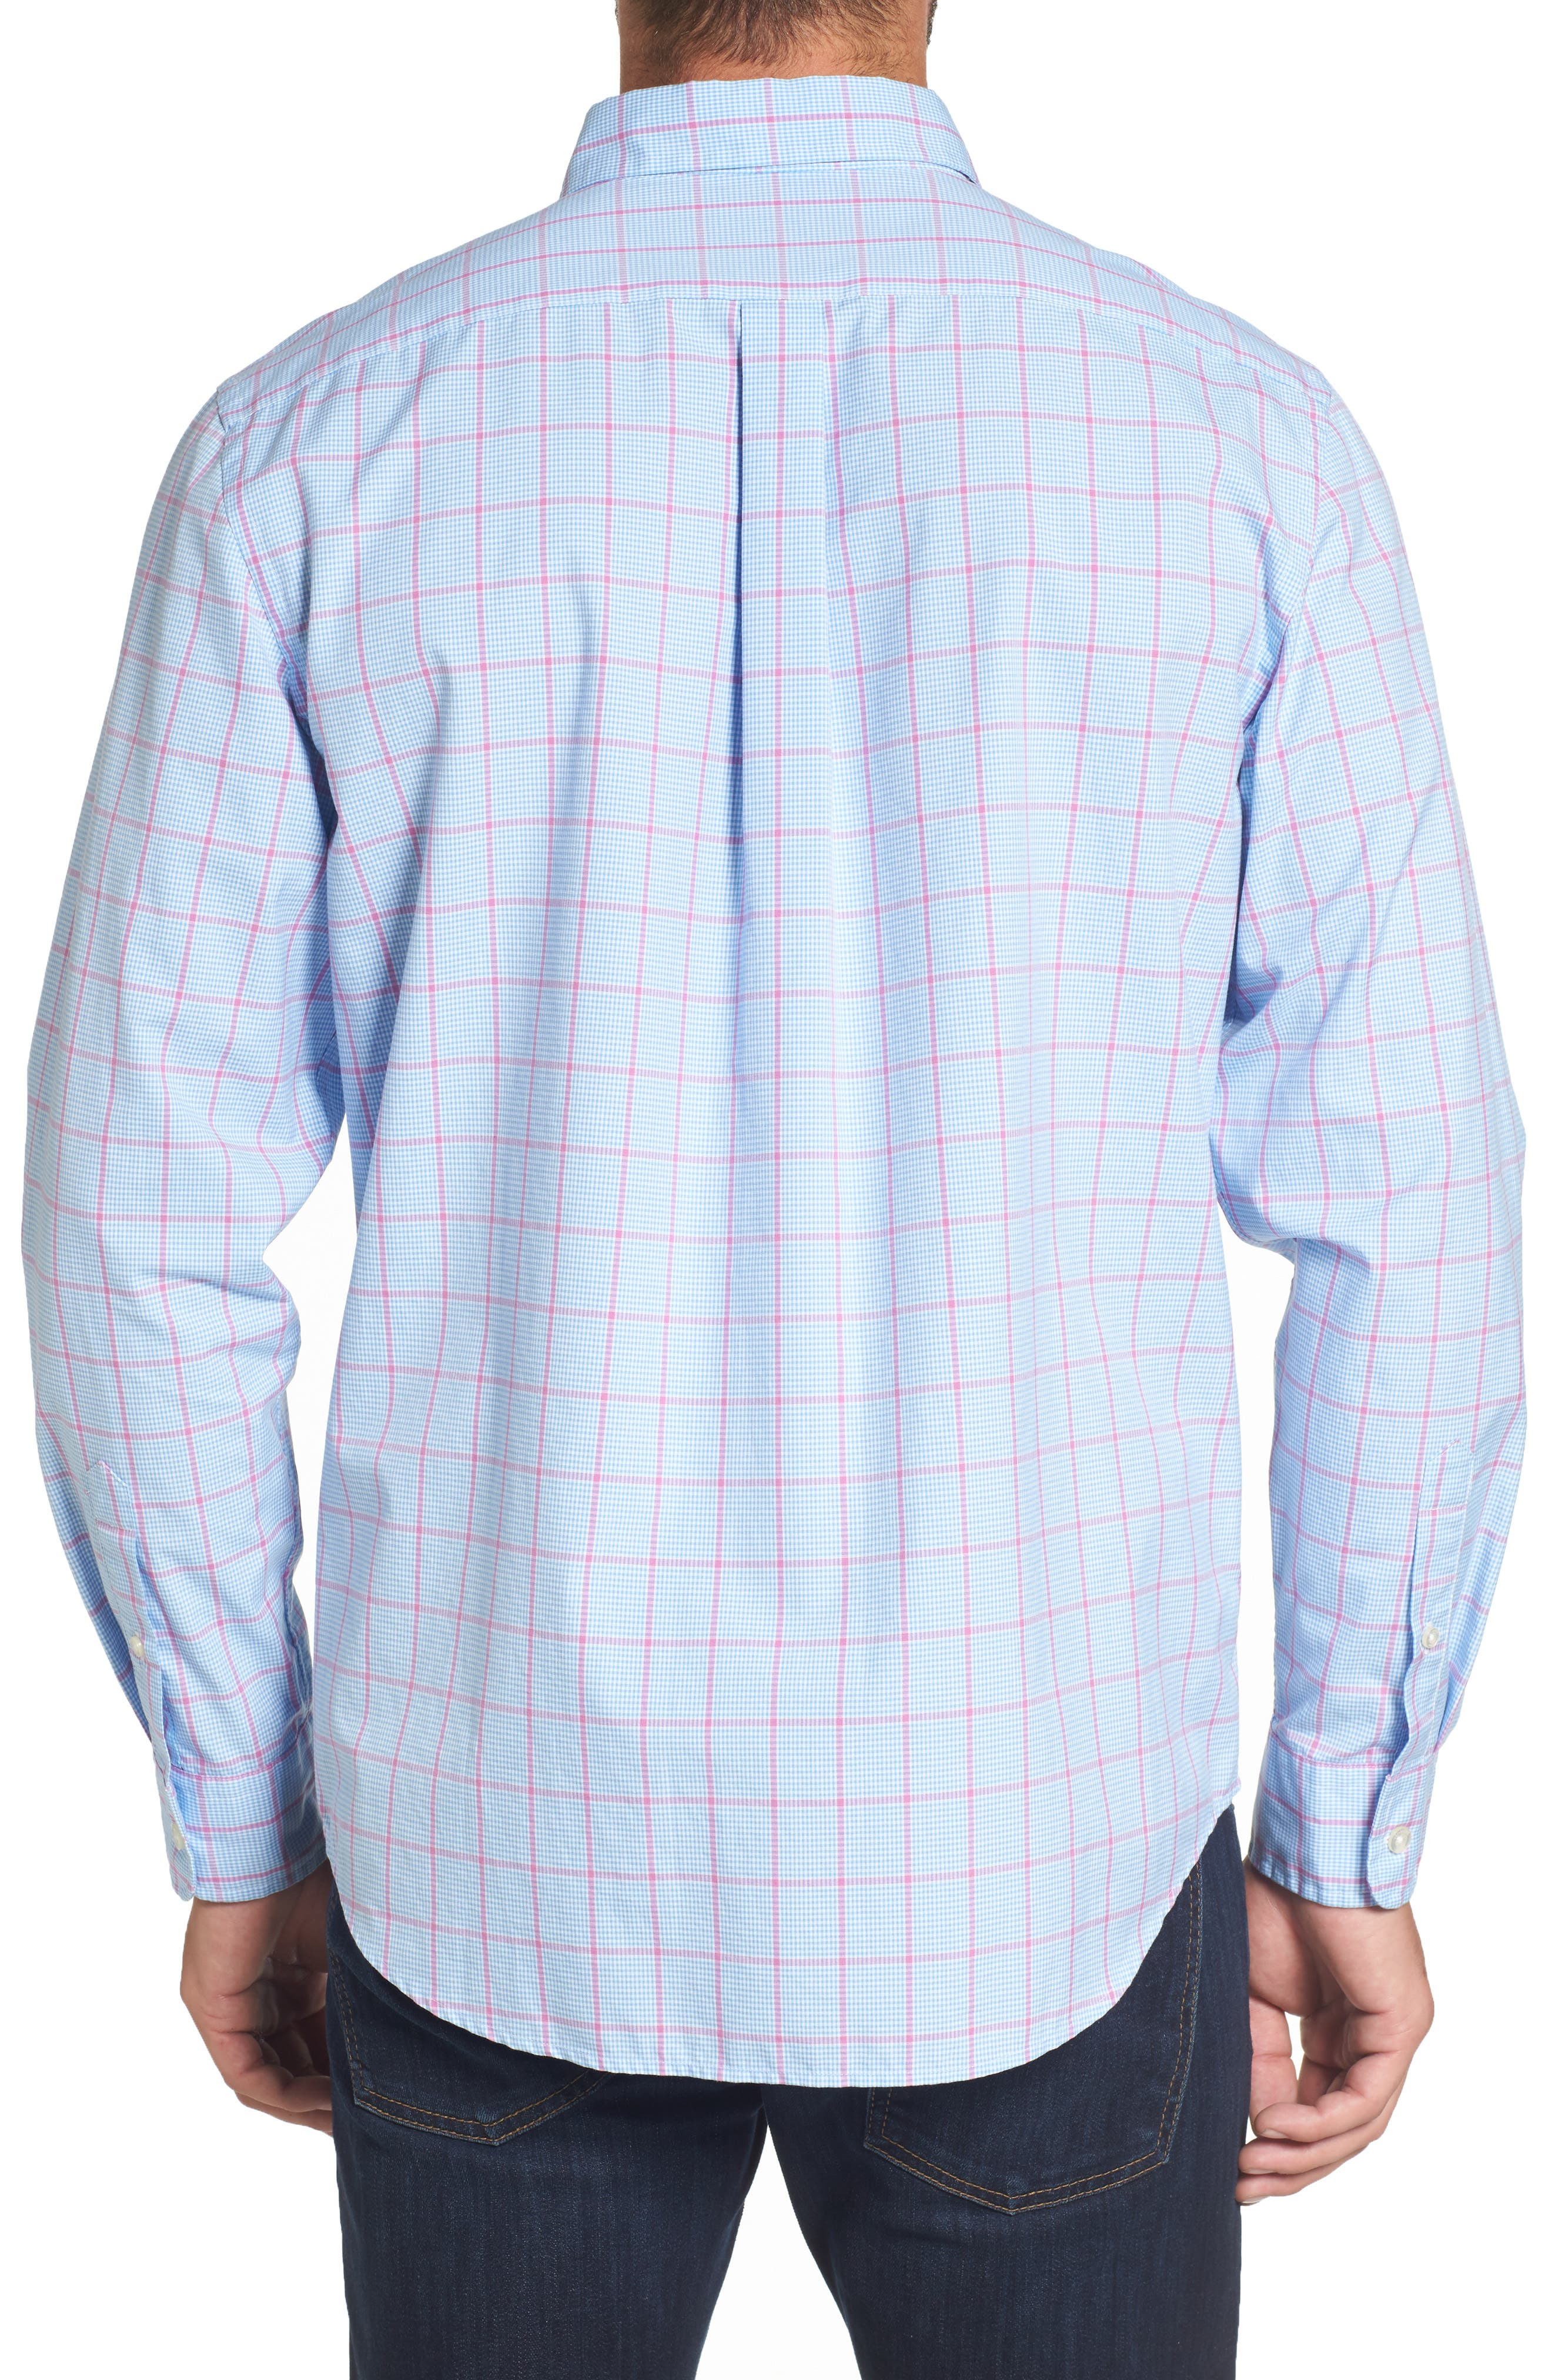 Murray Slim Fit Inlet Check Sport Shirt,                             Alternate thumbnail 2, color,                             438